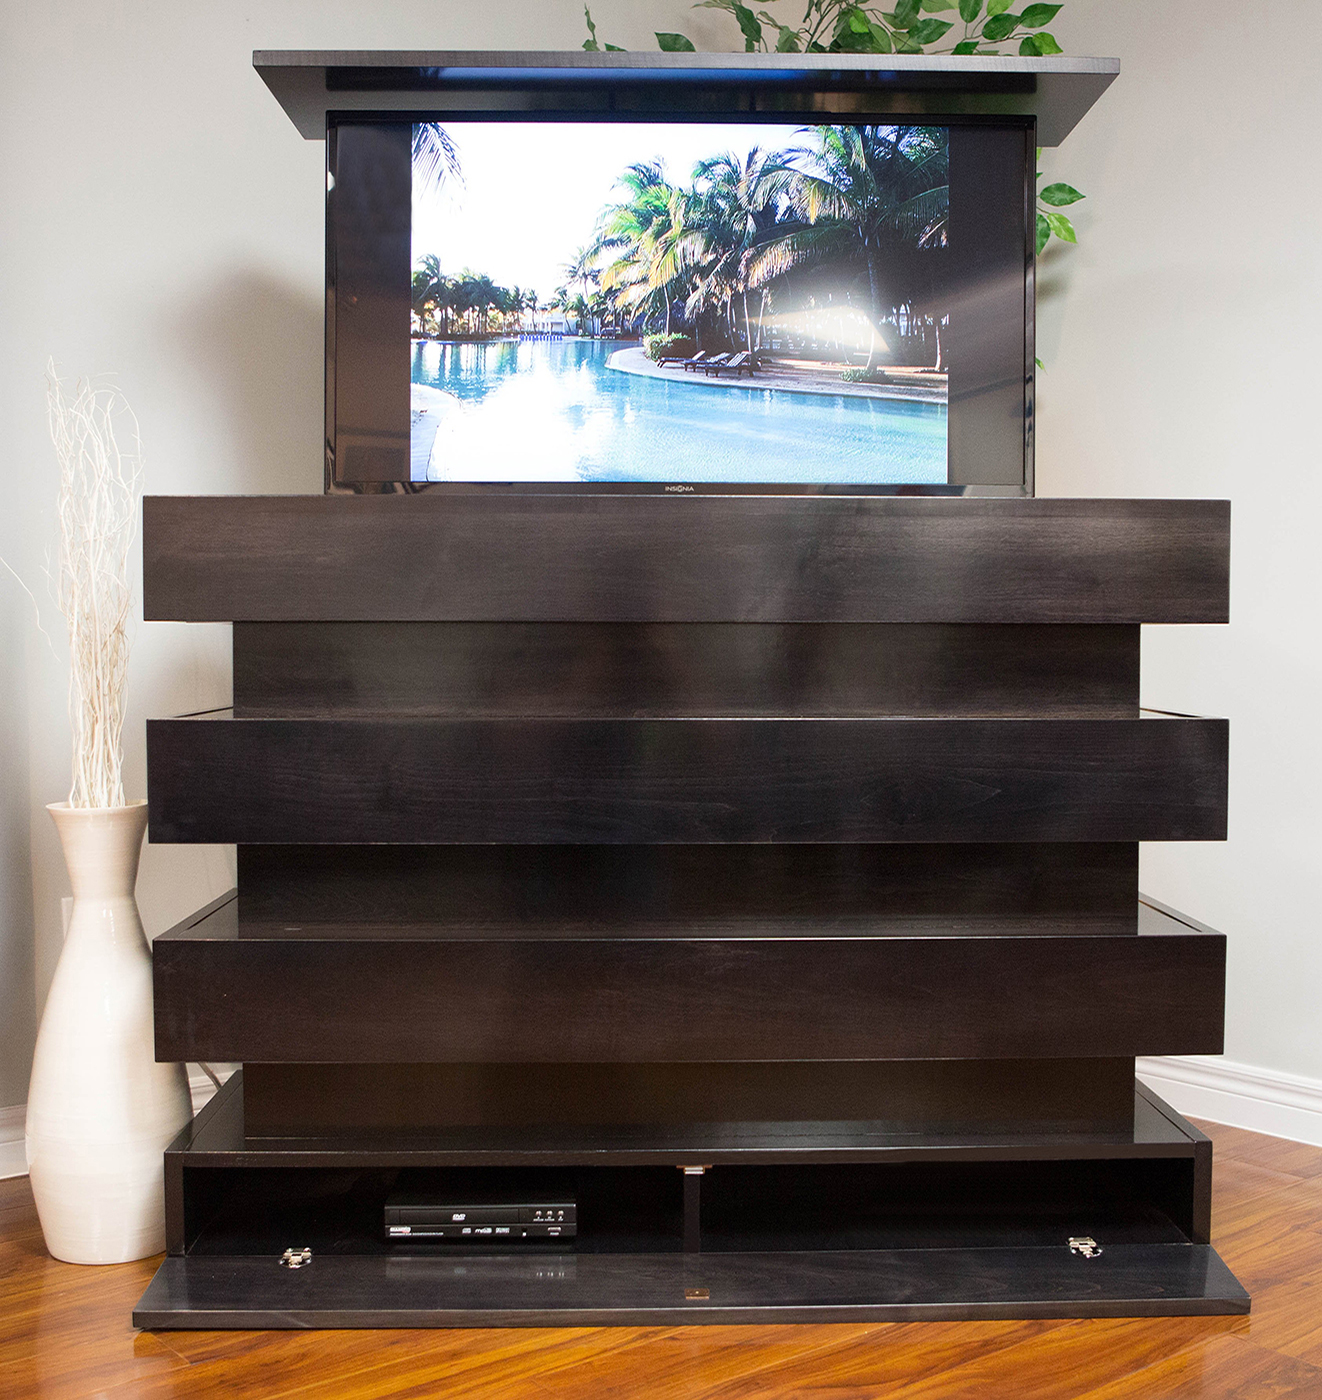 TV Lift Cabinet-TV stand